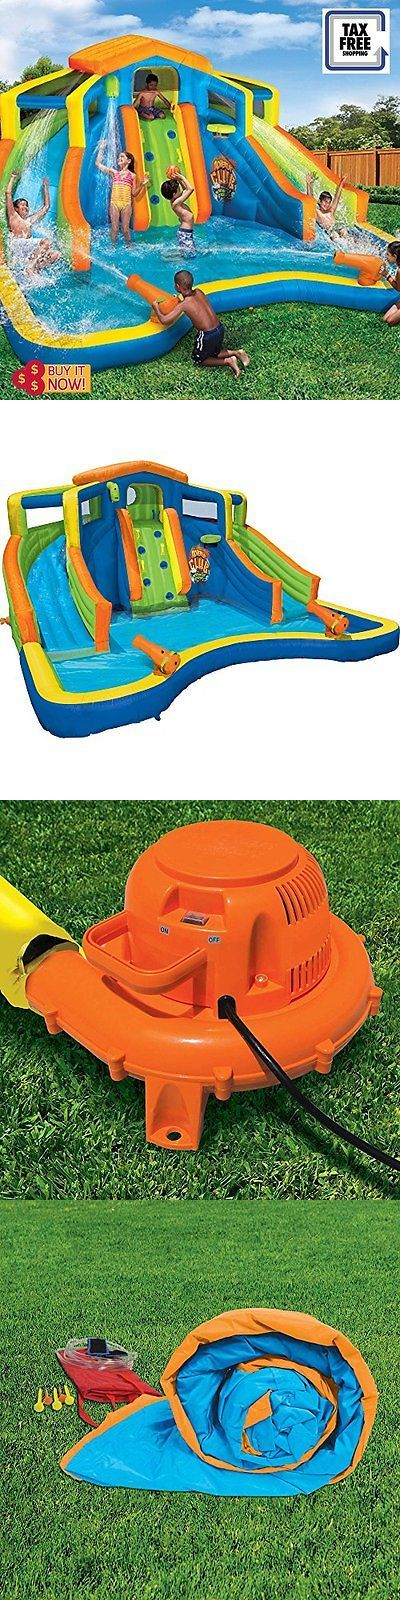 Water Slides 145992: Dual Slide Commercial Inflatable Water Slide Bounce House Water Park Backyard -> BUY IT NOW ONLY: $1322.26 on eBay!